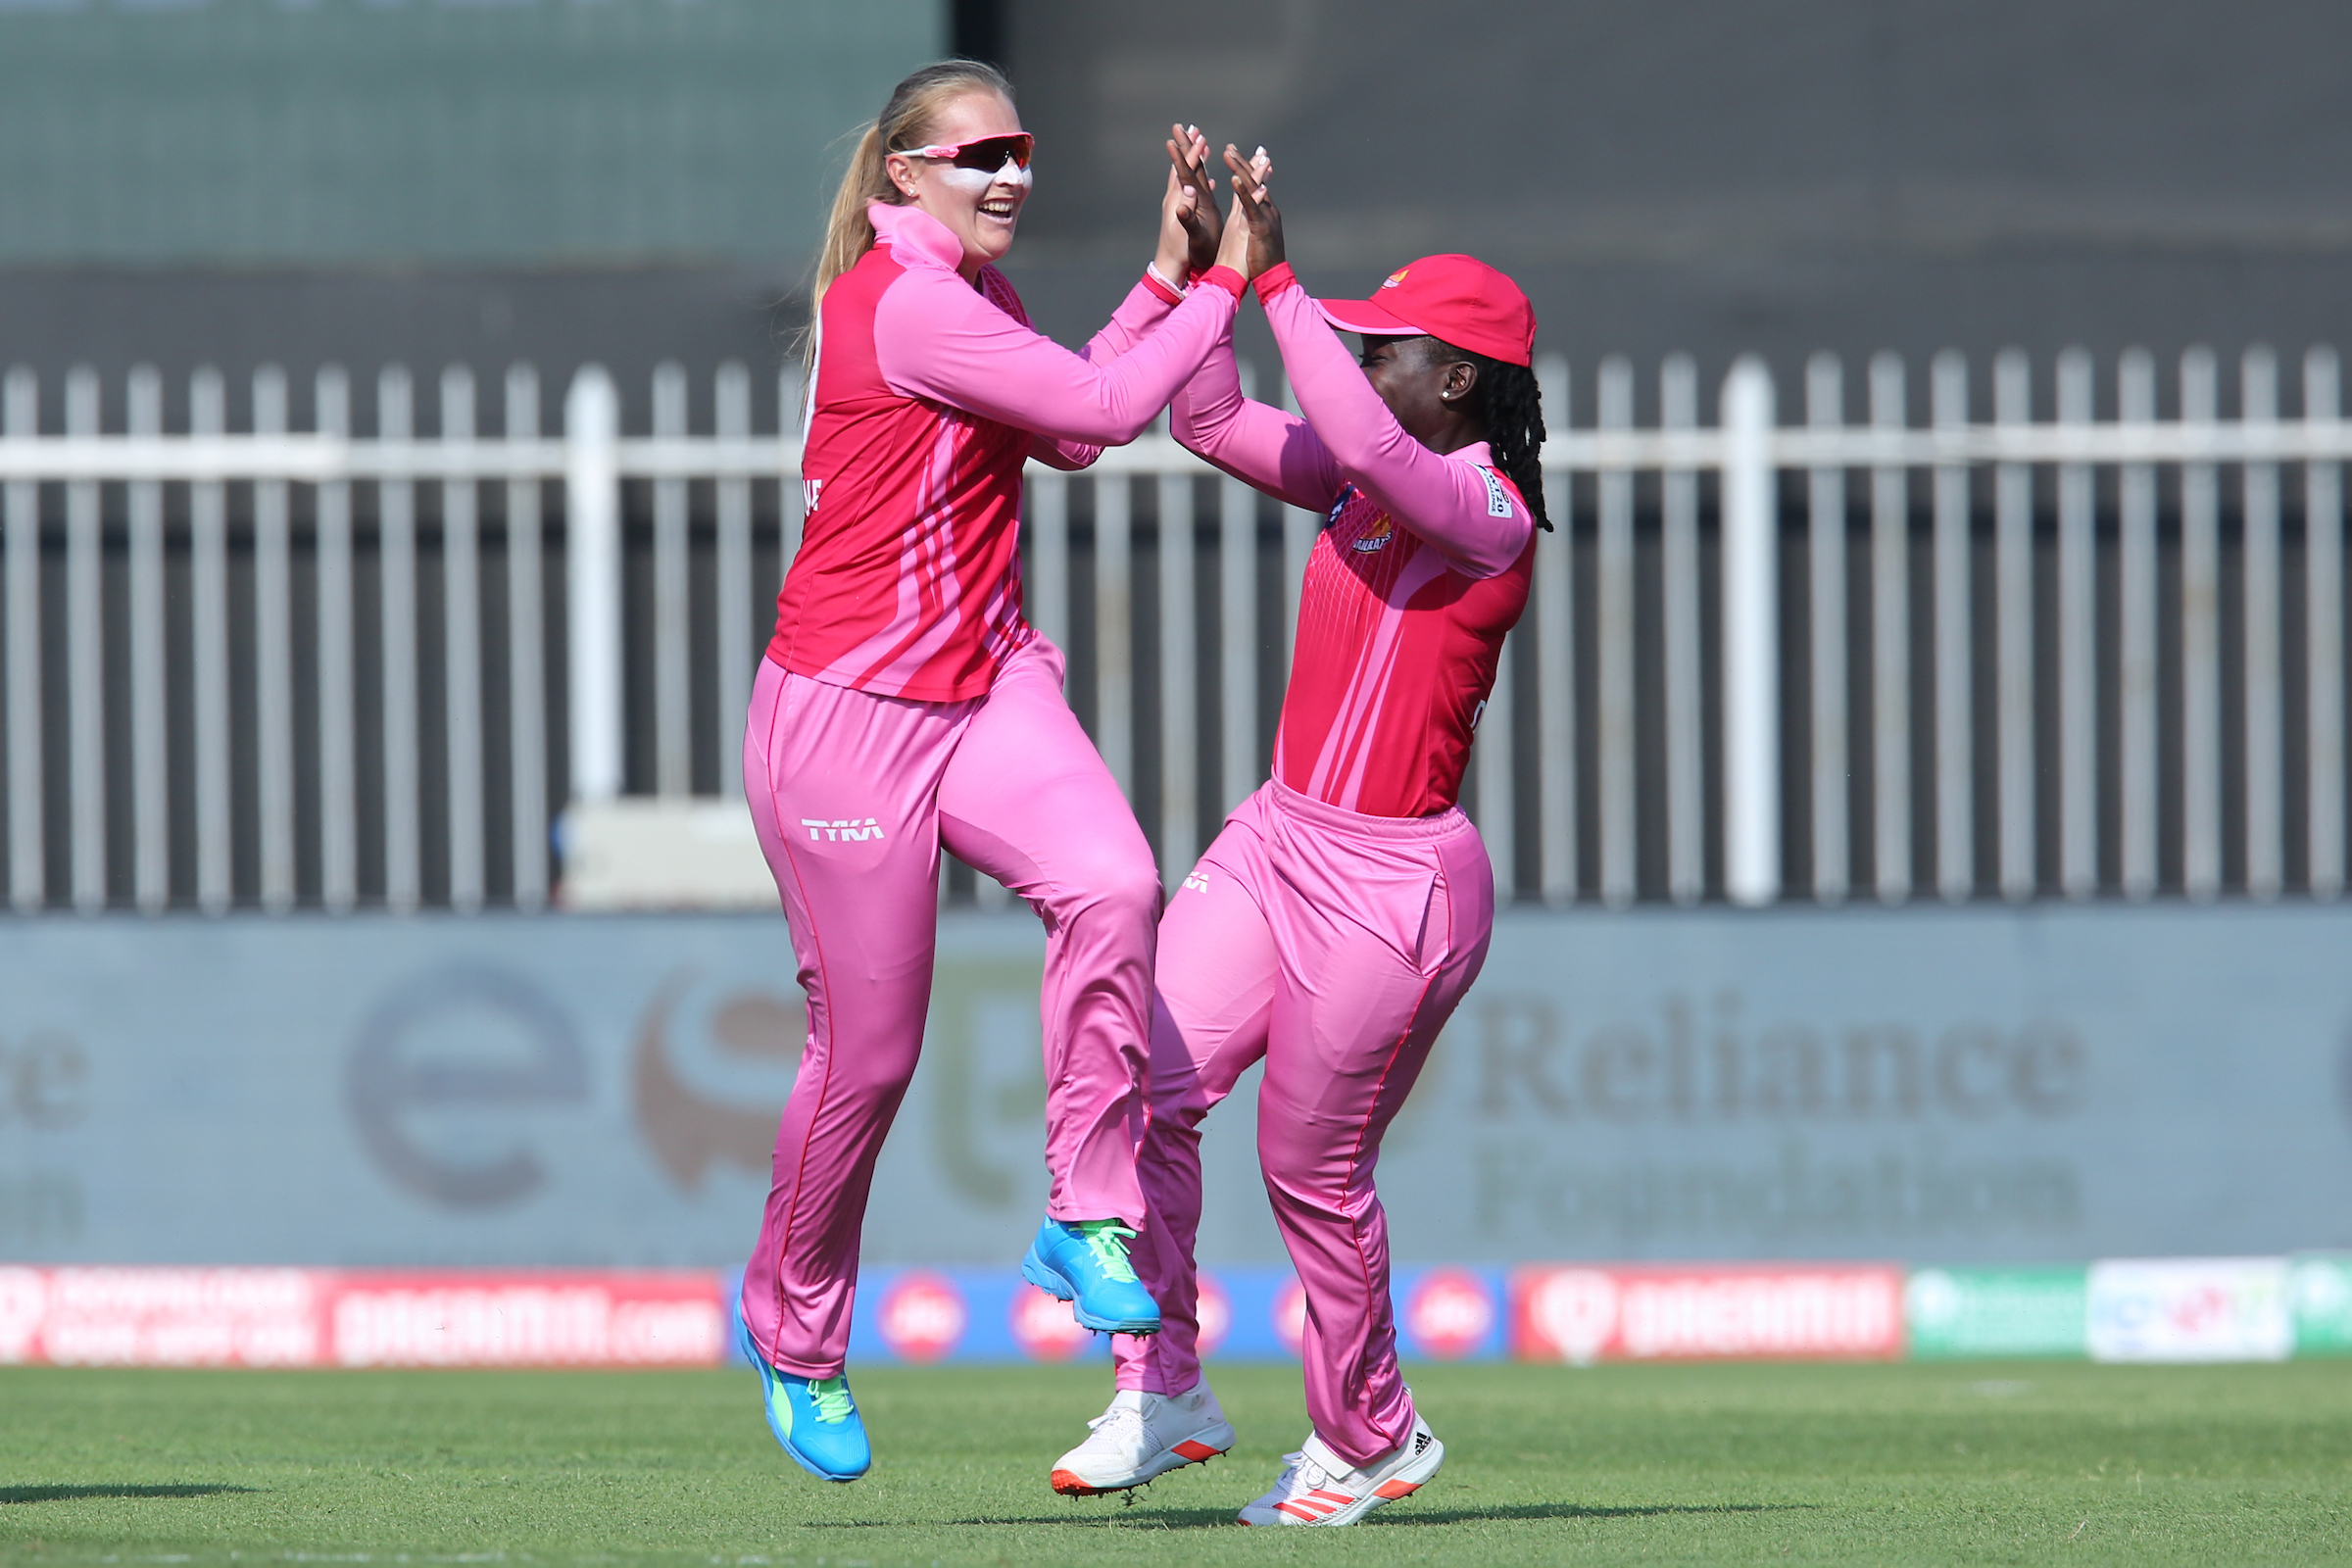 Sophie Ecclestone was awarded Player-of-the-Match   IPL/BCCI